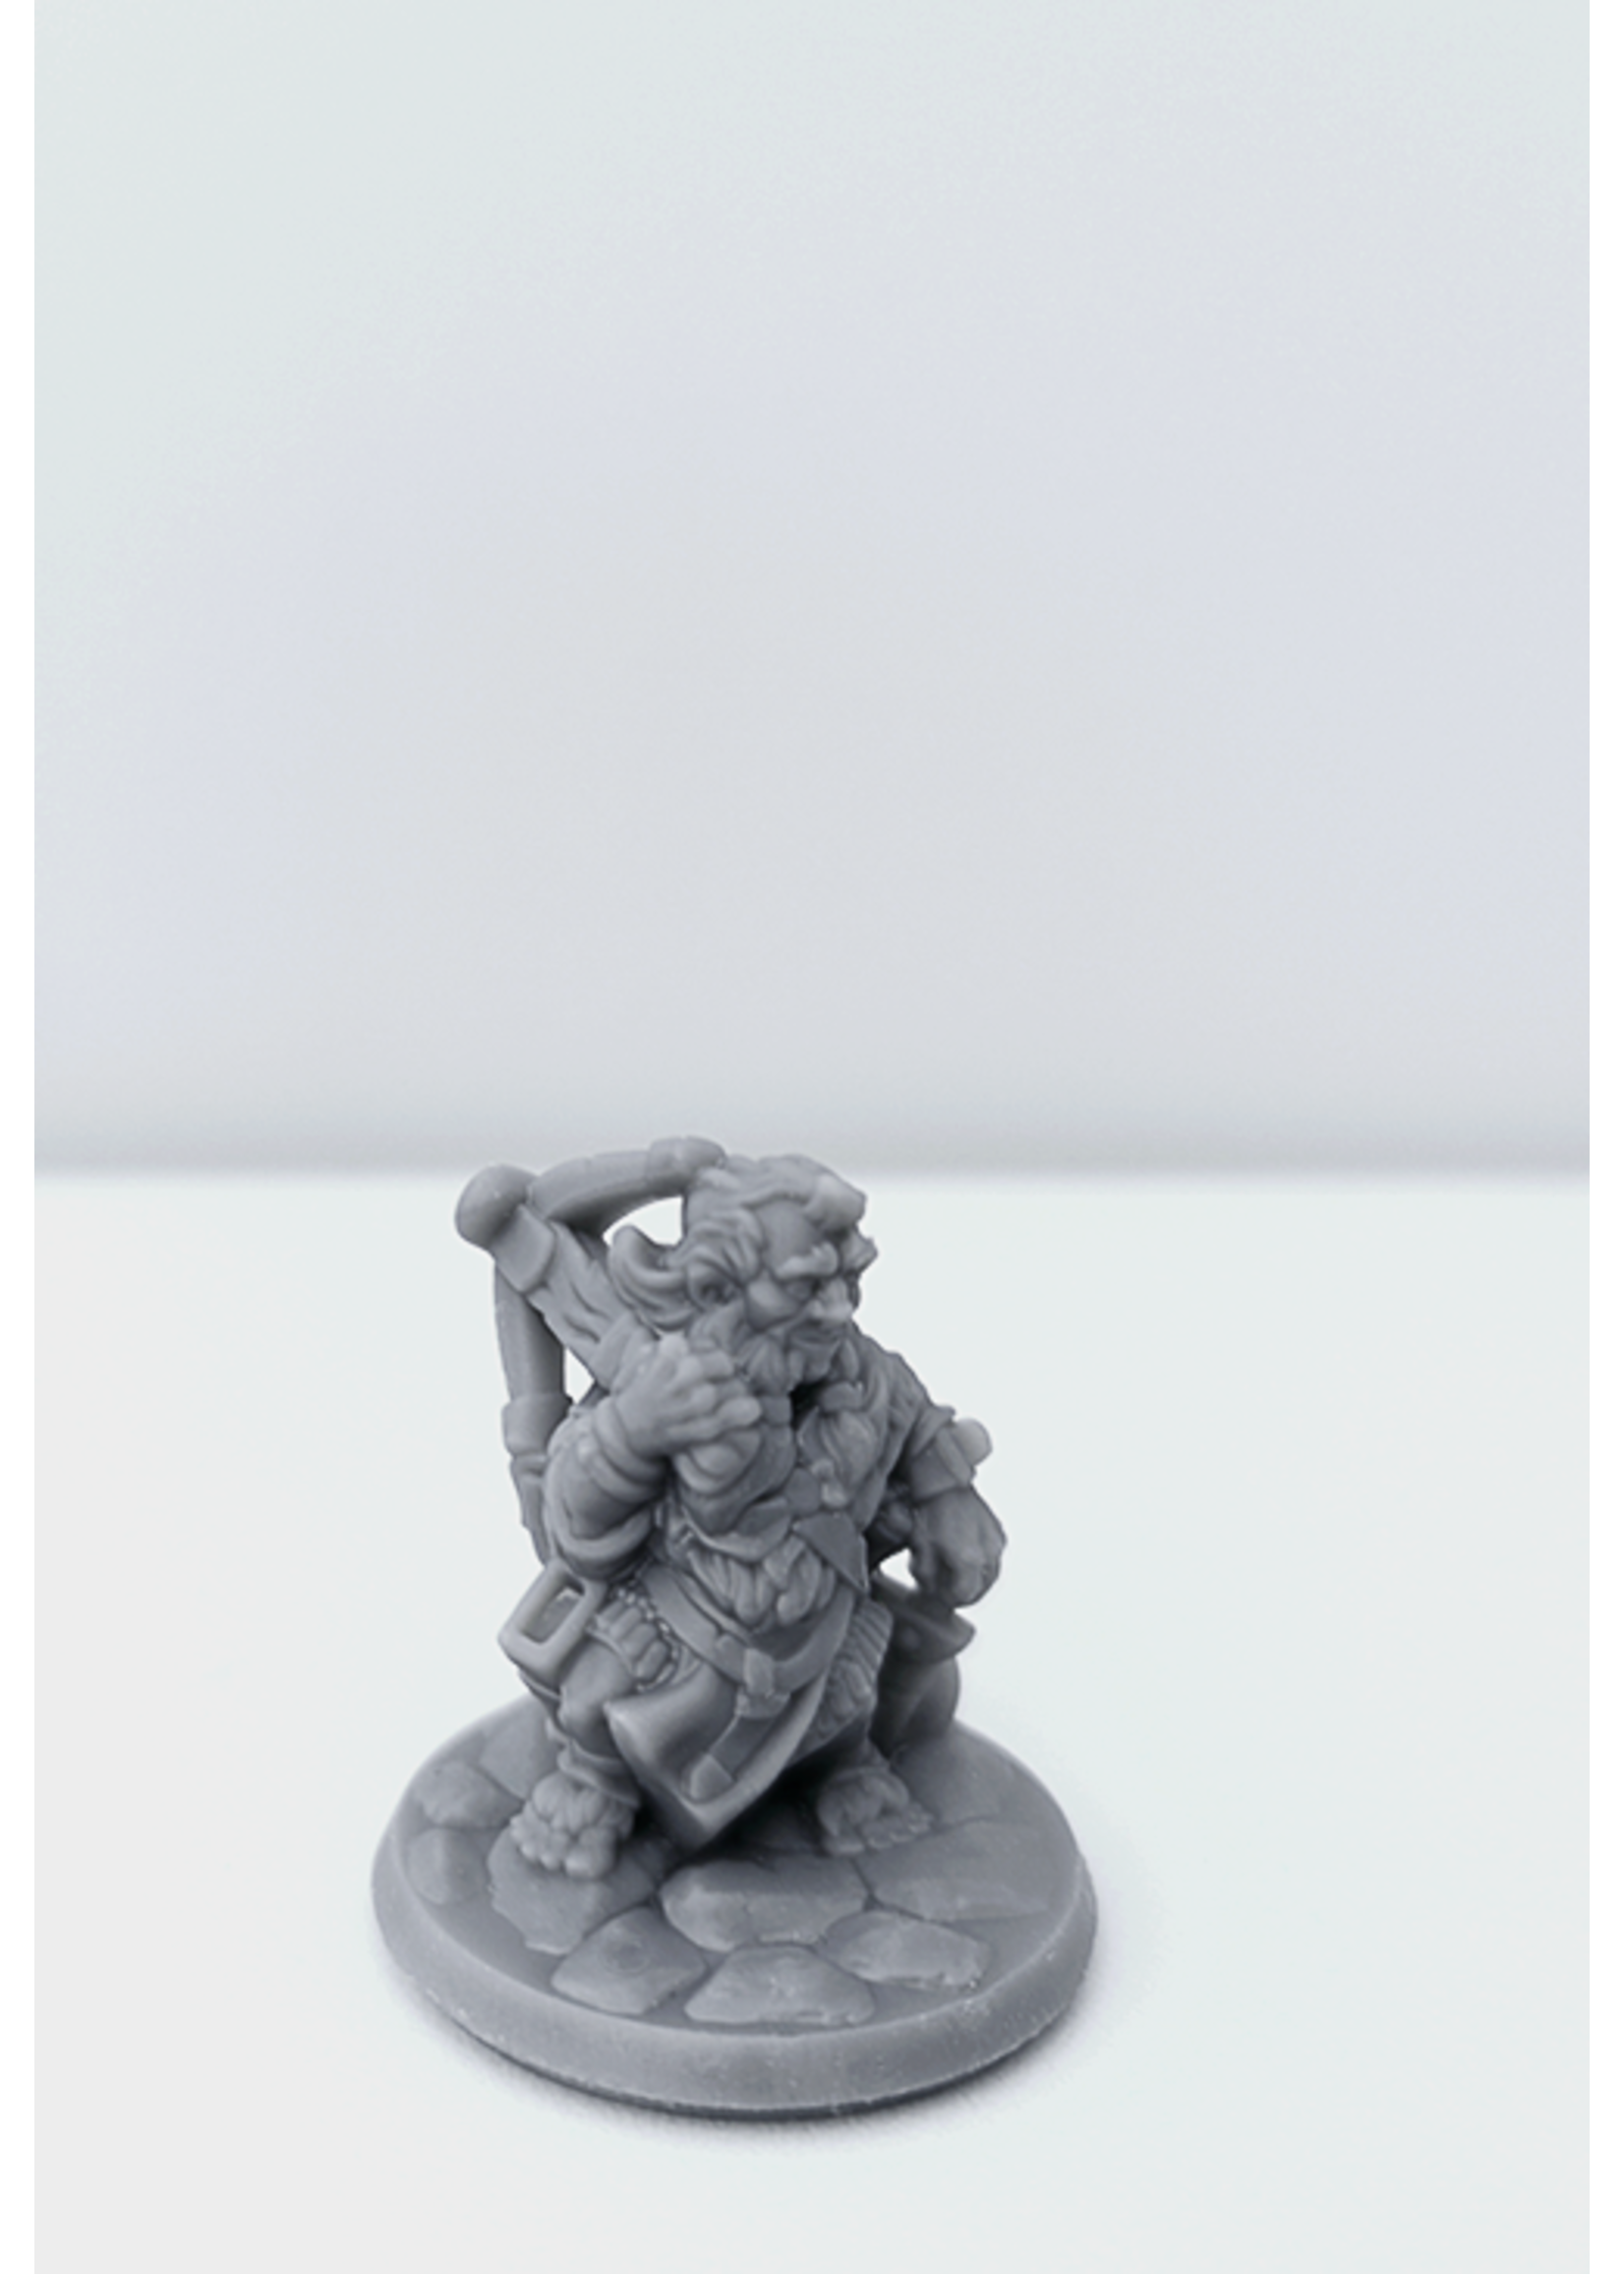 3D Printed Miniature - Halfling Male 01 - Dungeons & Dragons - Hero of the Realm KS